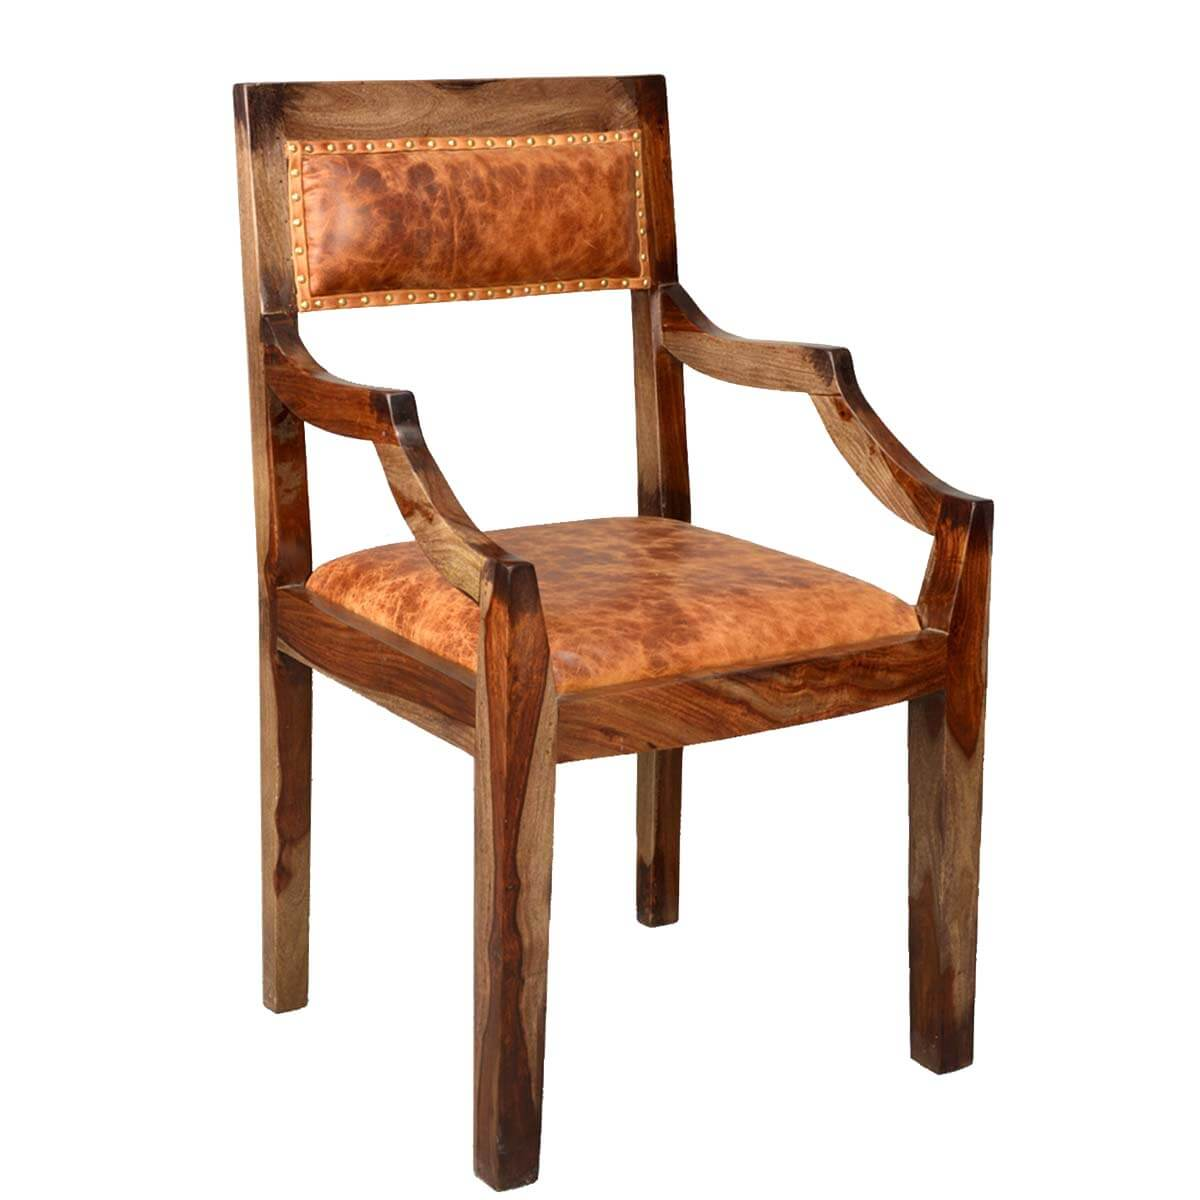 All Wood Dining Room Chairs: Imperial Solid Wood & Leather Upholstered Dining Chair